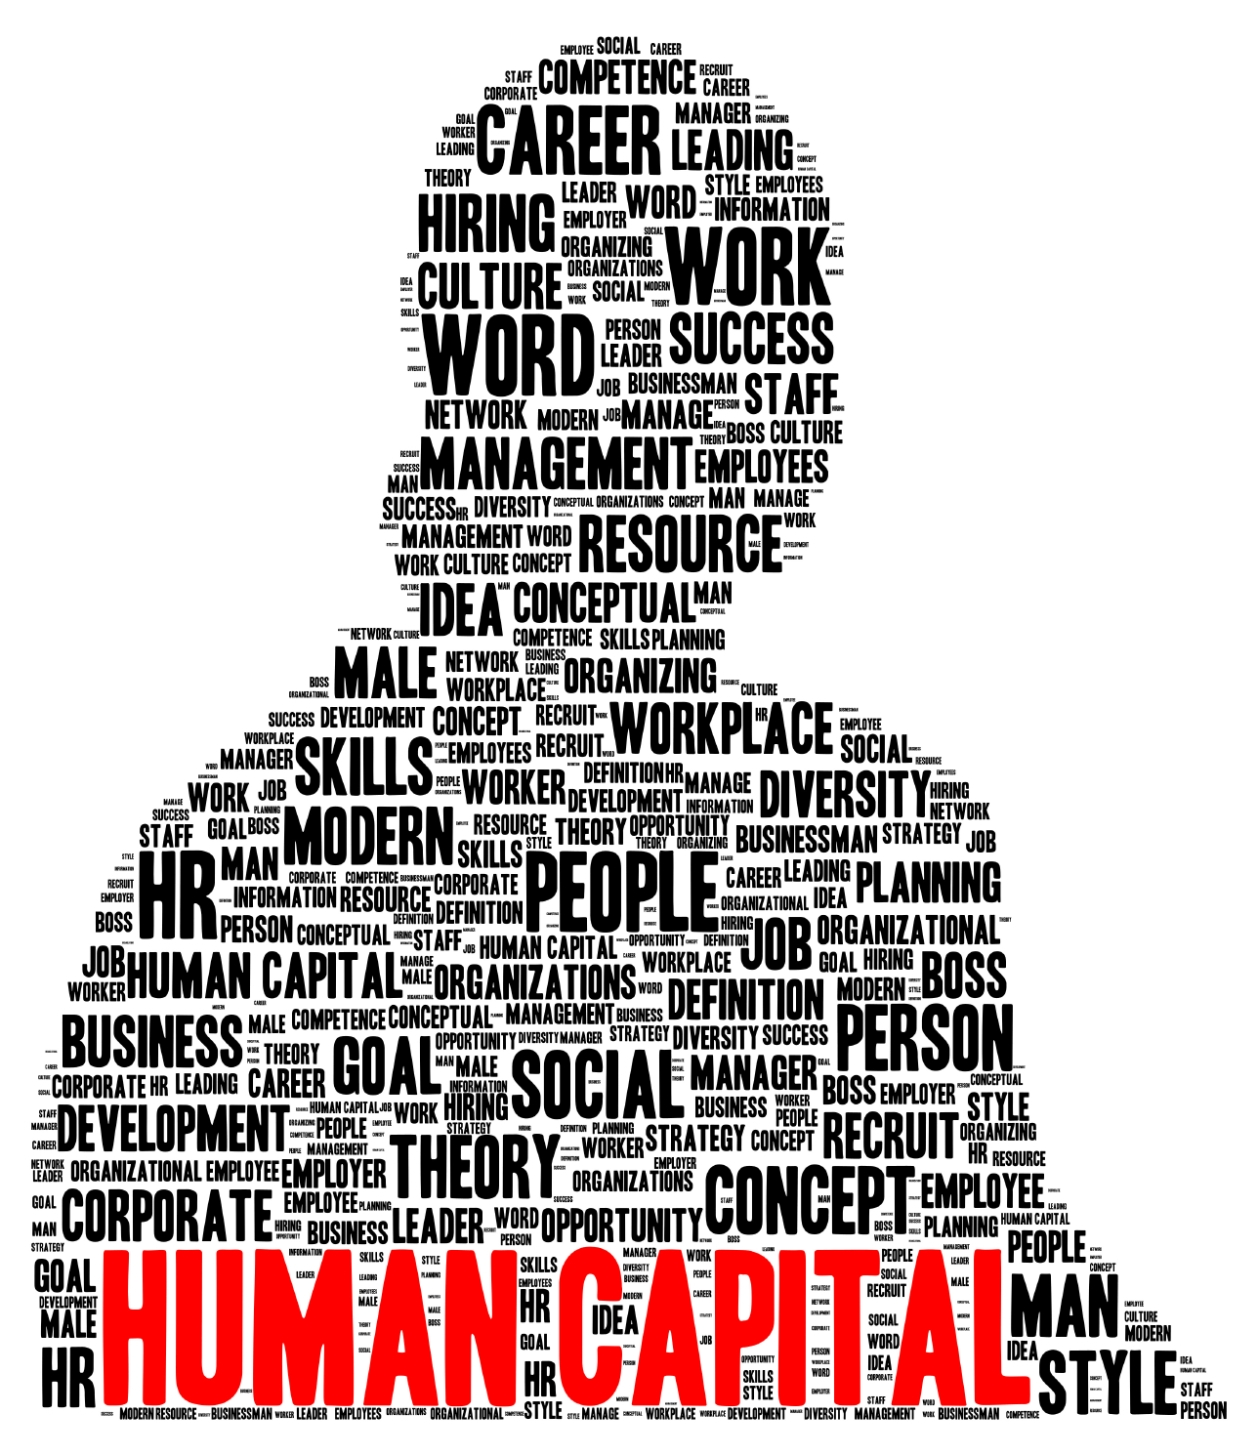 a comparison of the difference in managing physical or financial capital and human capital The human capital theory principles, critiques and current thinking the significance of education and human capital has been brought out in many the human capital theory is even used to explain differences in entrepreneurship when looking at success rates of businesses established by men.